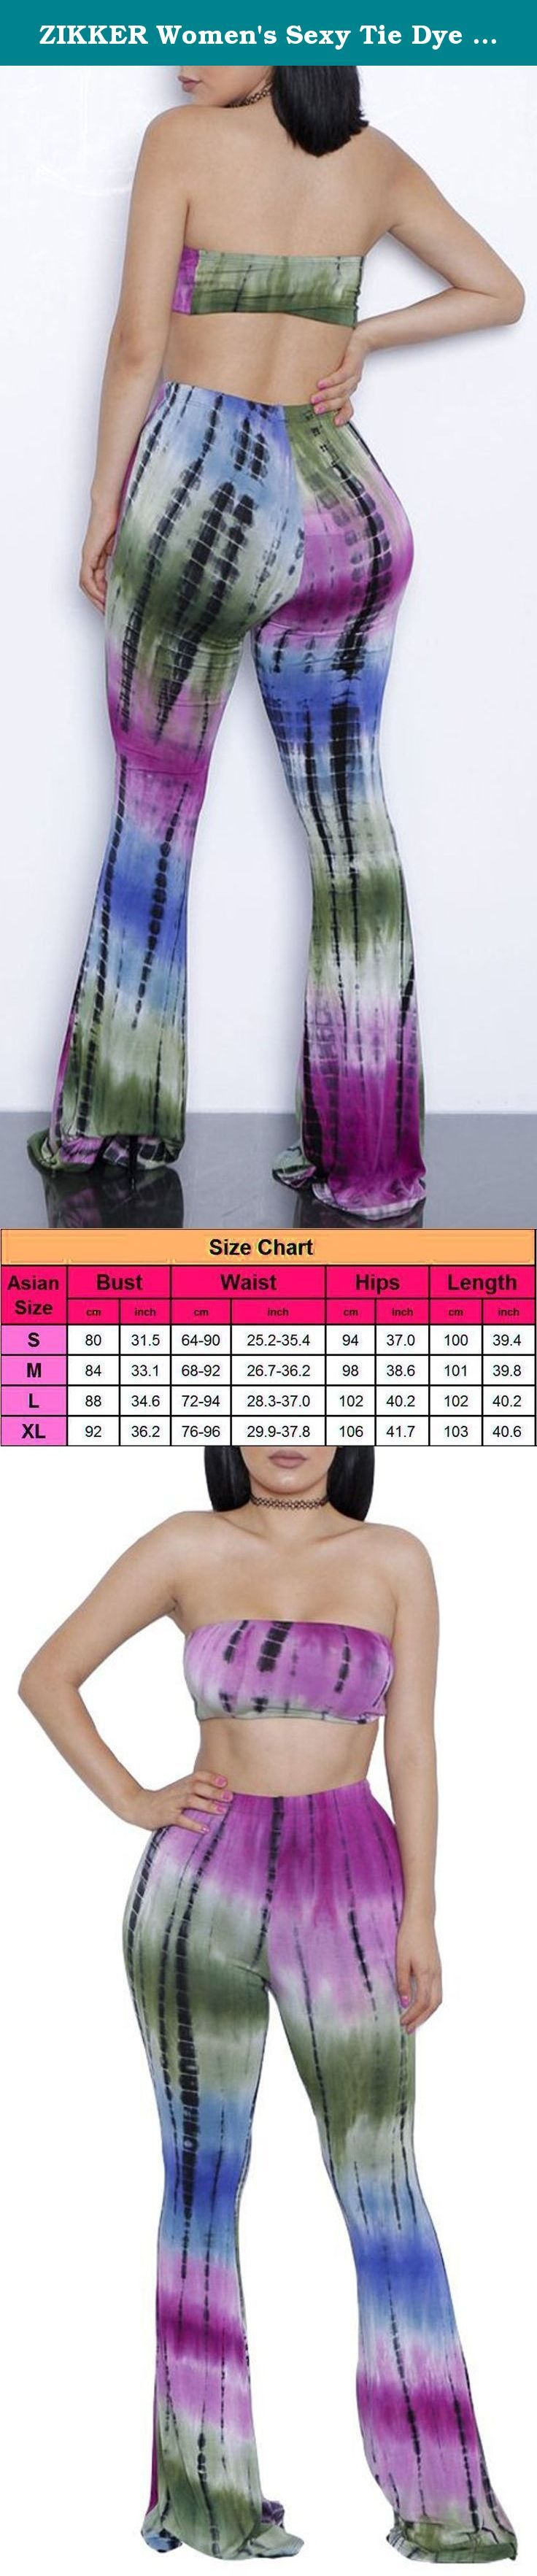 """ZIKKER Women's Sexy Tie Dye Print Bandeau Top Flared Bell Bottom Pants Outfits Purple Small. 5 Sizes For Choice,Please Refer to PRODUCT DESCRIPTION OR PICTURE SIZE Details before order. Note:Color differences allowed for light effects and display ternimal 5 Asian Sizes Available: Size S: Bust: 80cm/31.49"""" Waist:64cm-90cm/25.19""""-35.43"""" Hips: 94cm/37.01"""" Length: 100cm/39.37"""" Size M: Bust: 84cm/33.07"""" Waist:68cm-92cm/26.77""""-36.22"""" Hips:98cm/38.58"""" Length: 101cm/39.76"""" Size L: Bust…"""